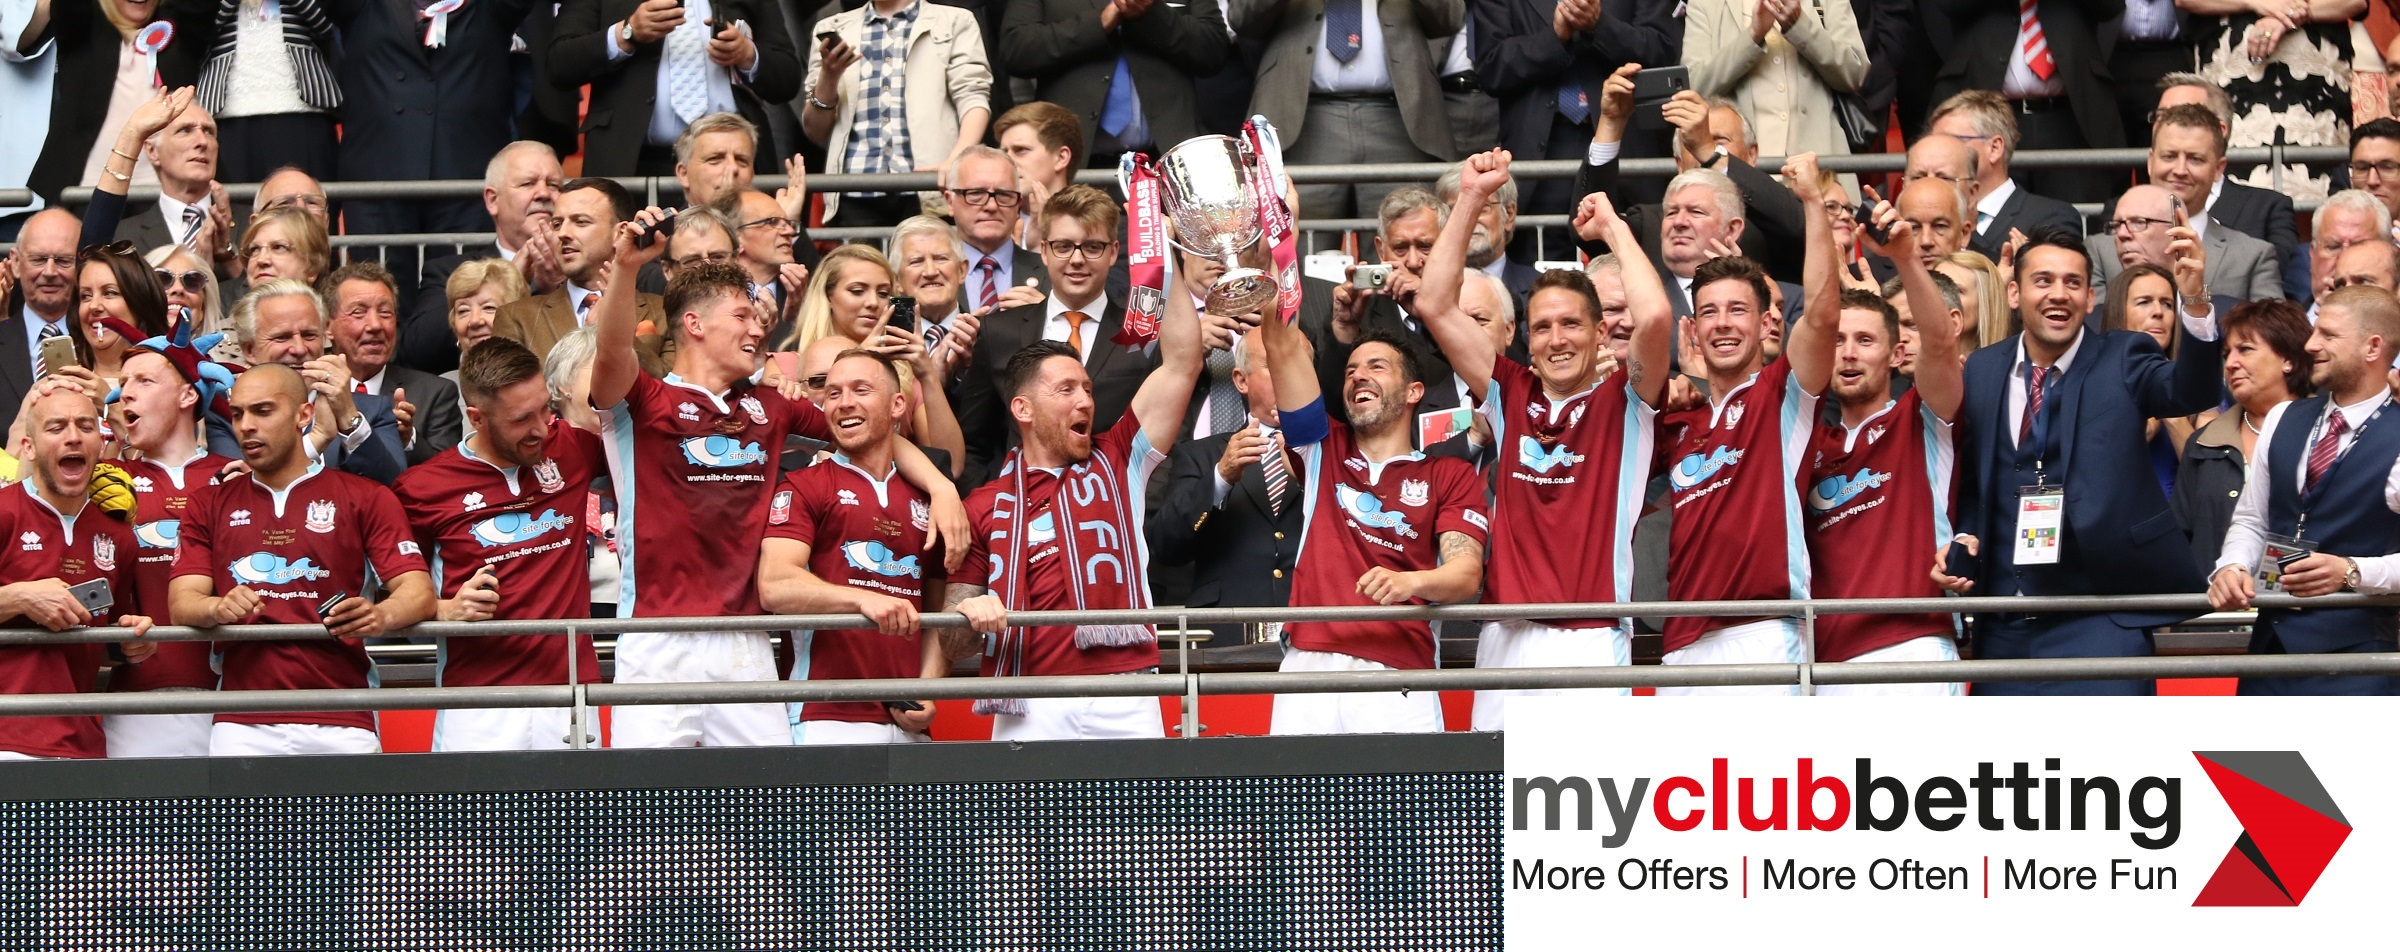 Club announces launch of betting site for SSFC supporters